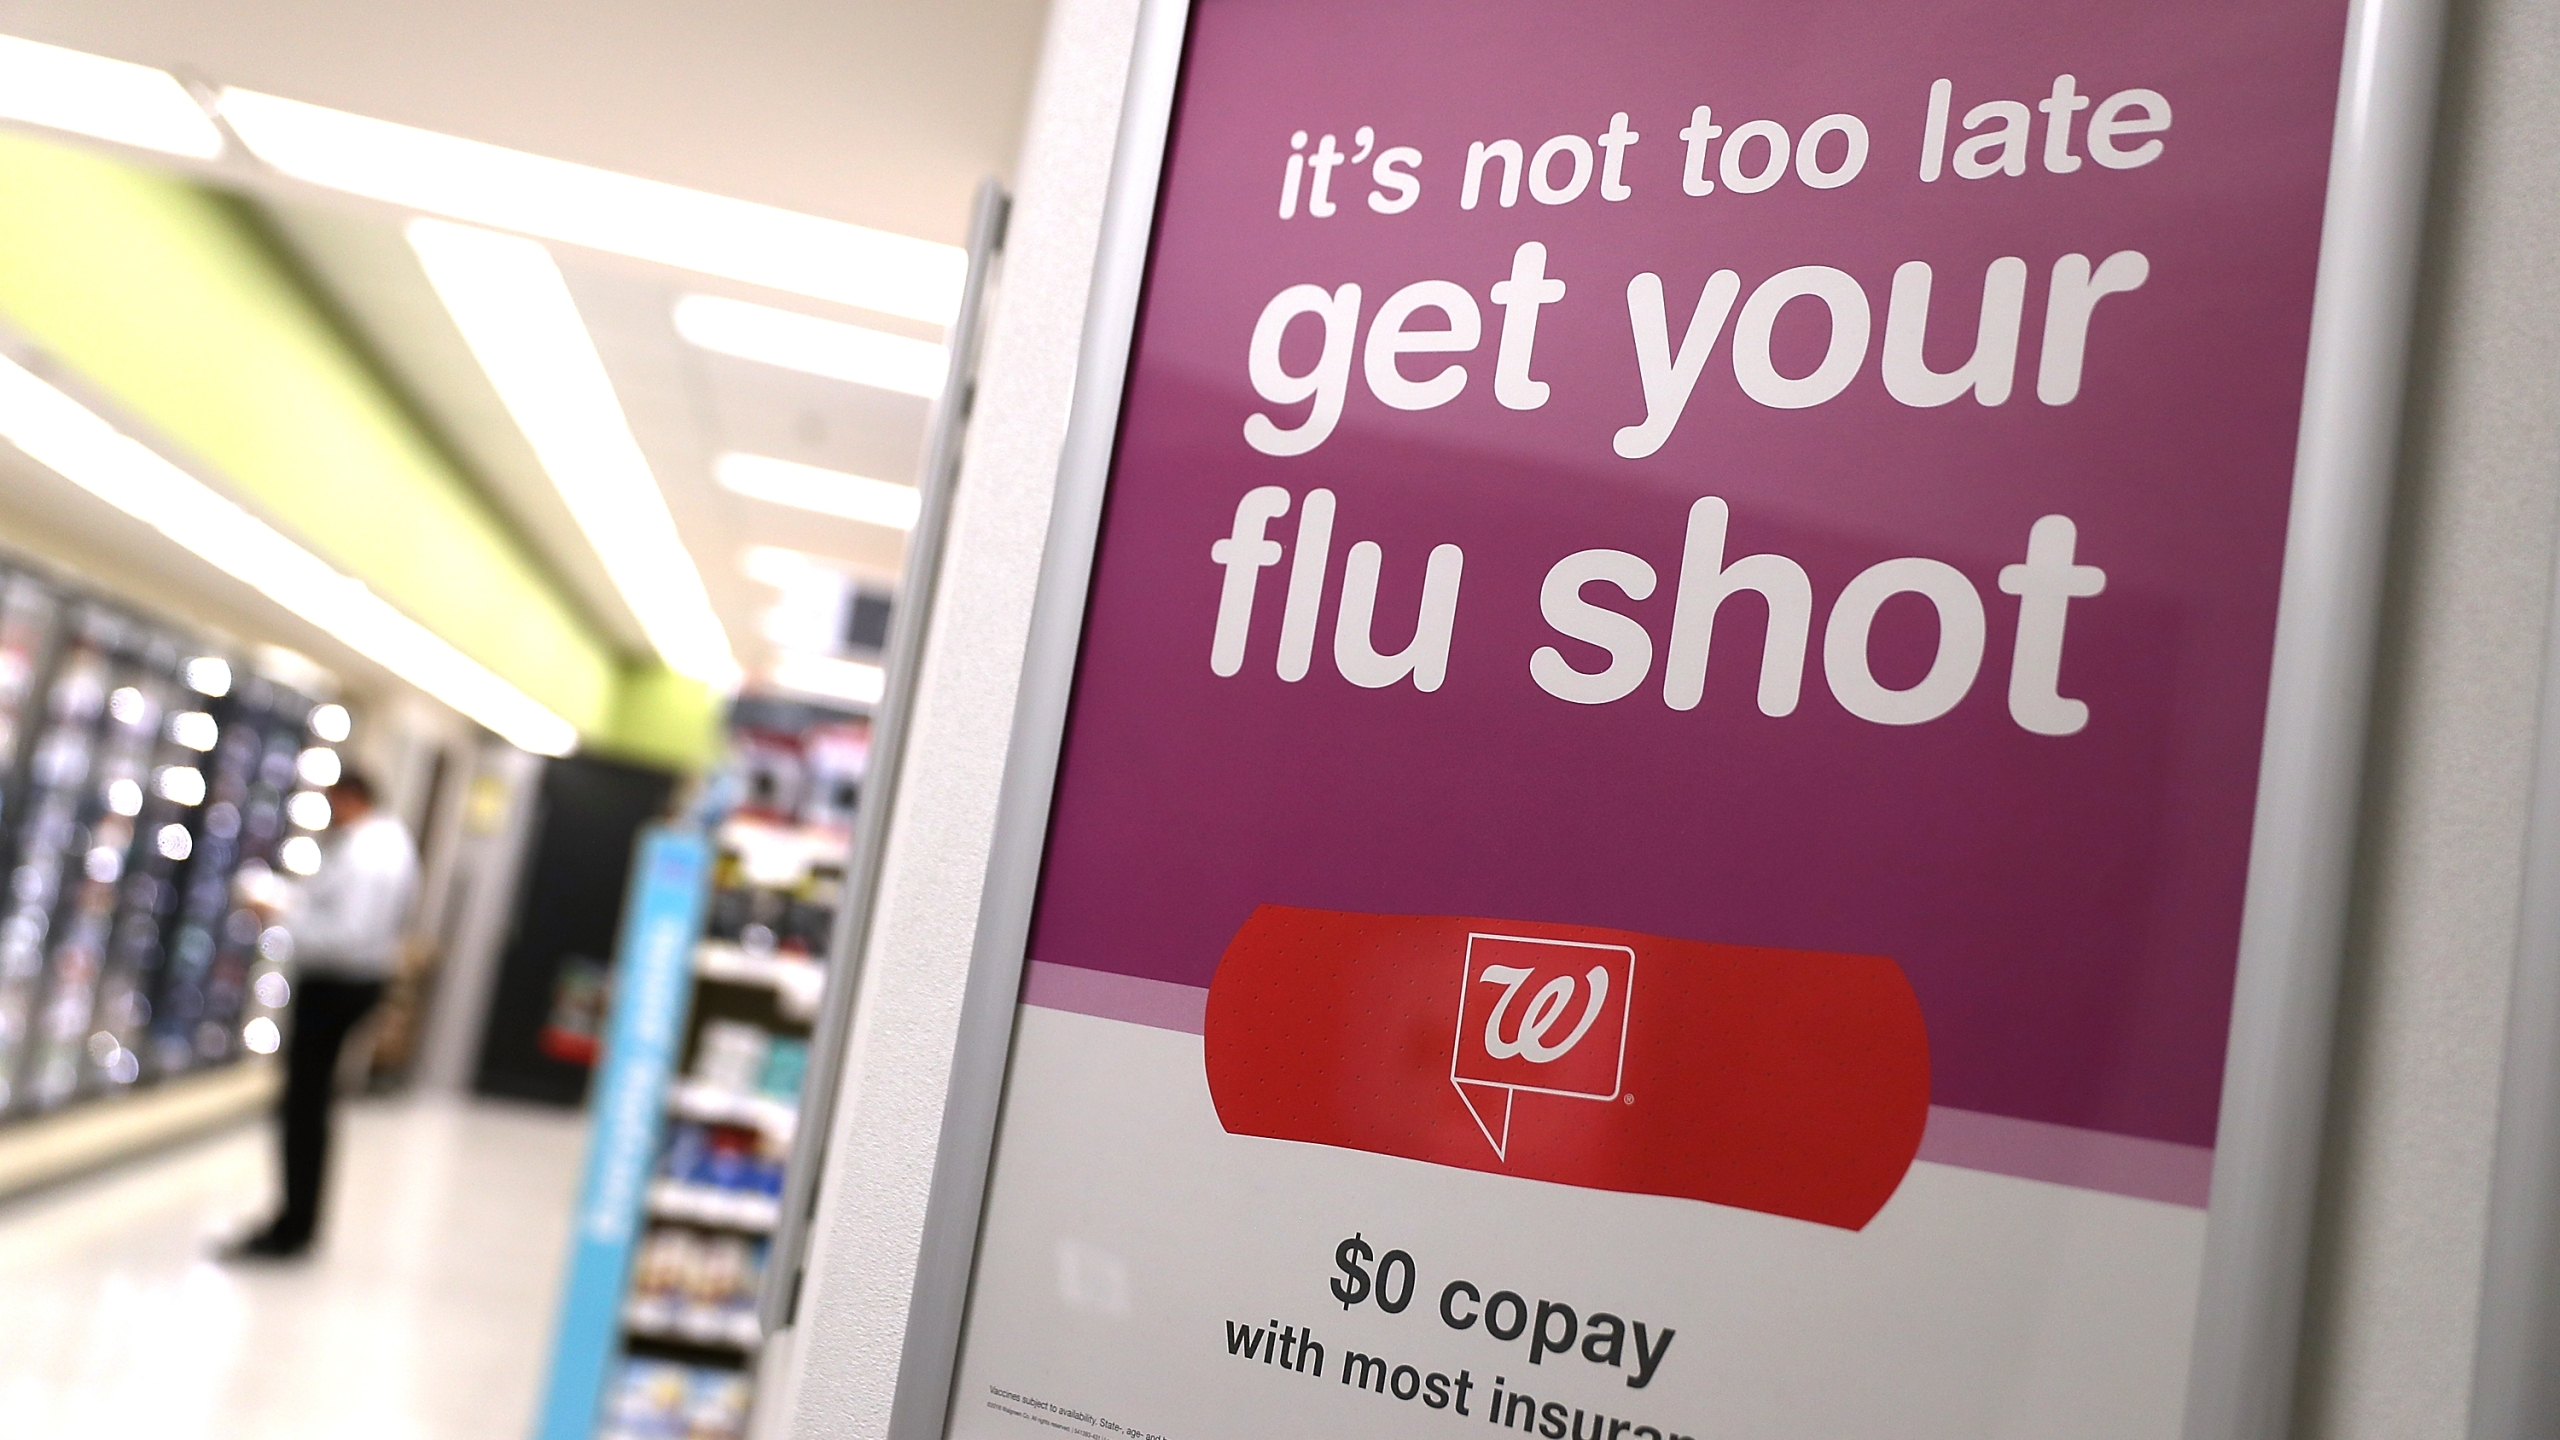 A sign advertising flu shots is displayed at a Walgreens phramacy on January 22, 2018 in San Francisco. (Credit: Justin Sullivan/Getty Images)